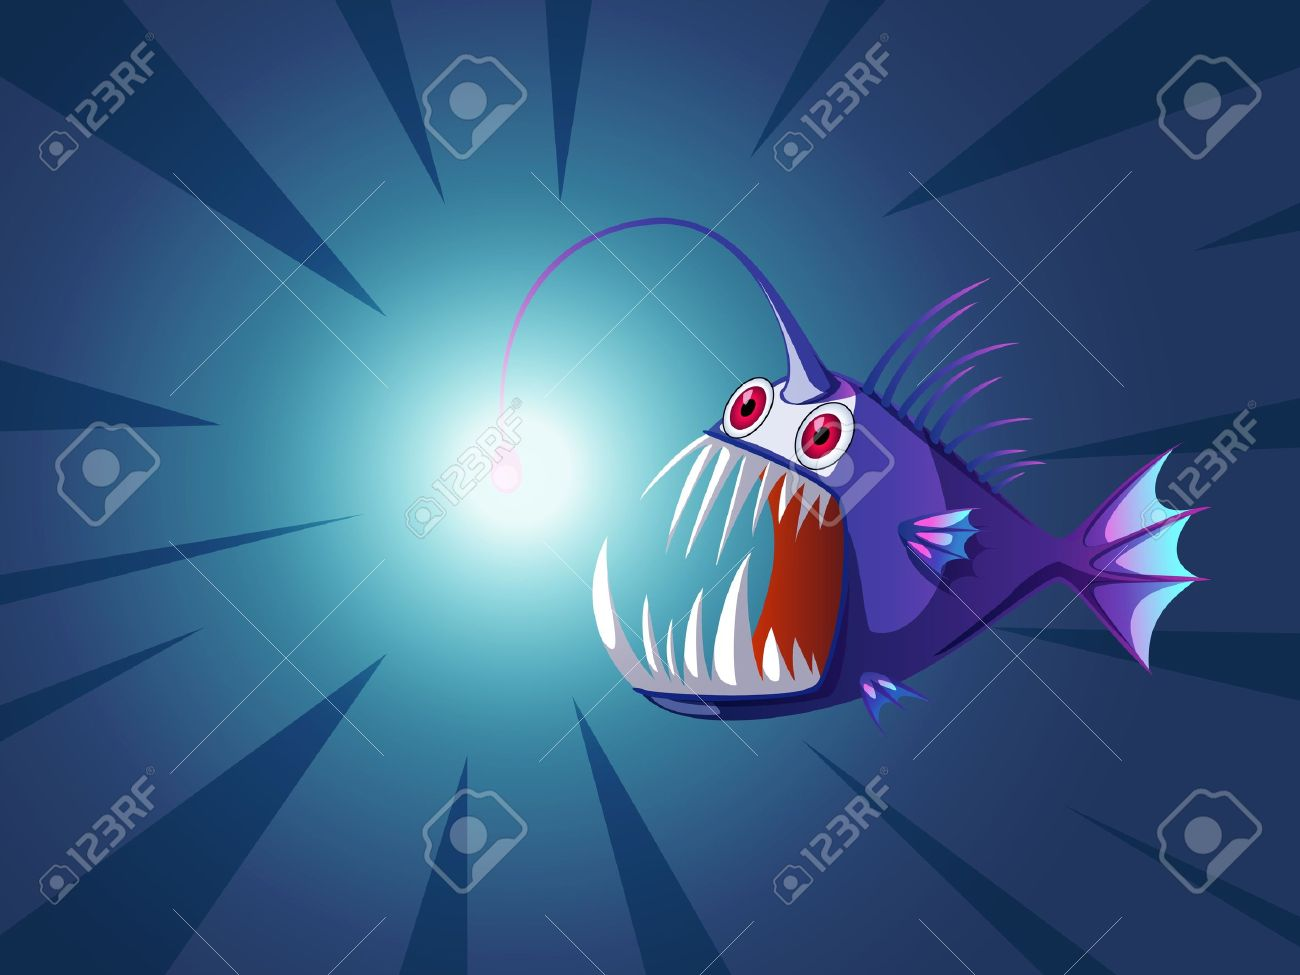 angler fish with light on head royalty free cliparts, vectors, and, Reel Combo